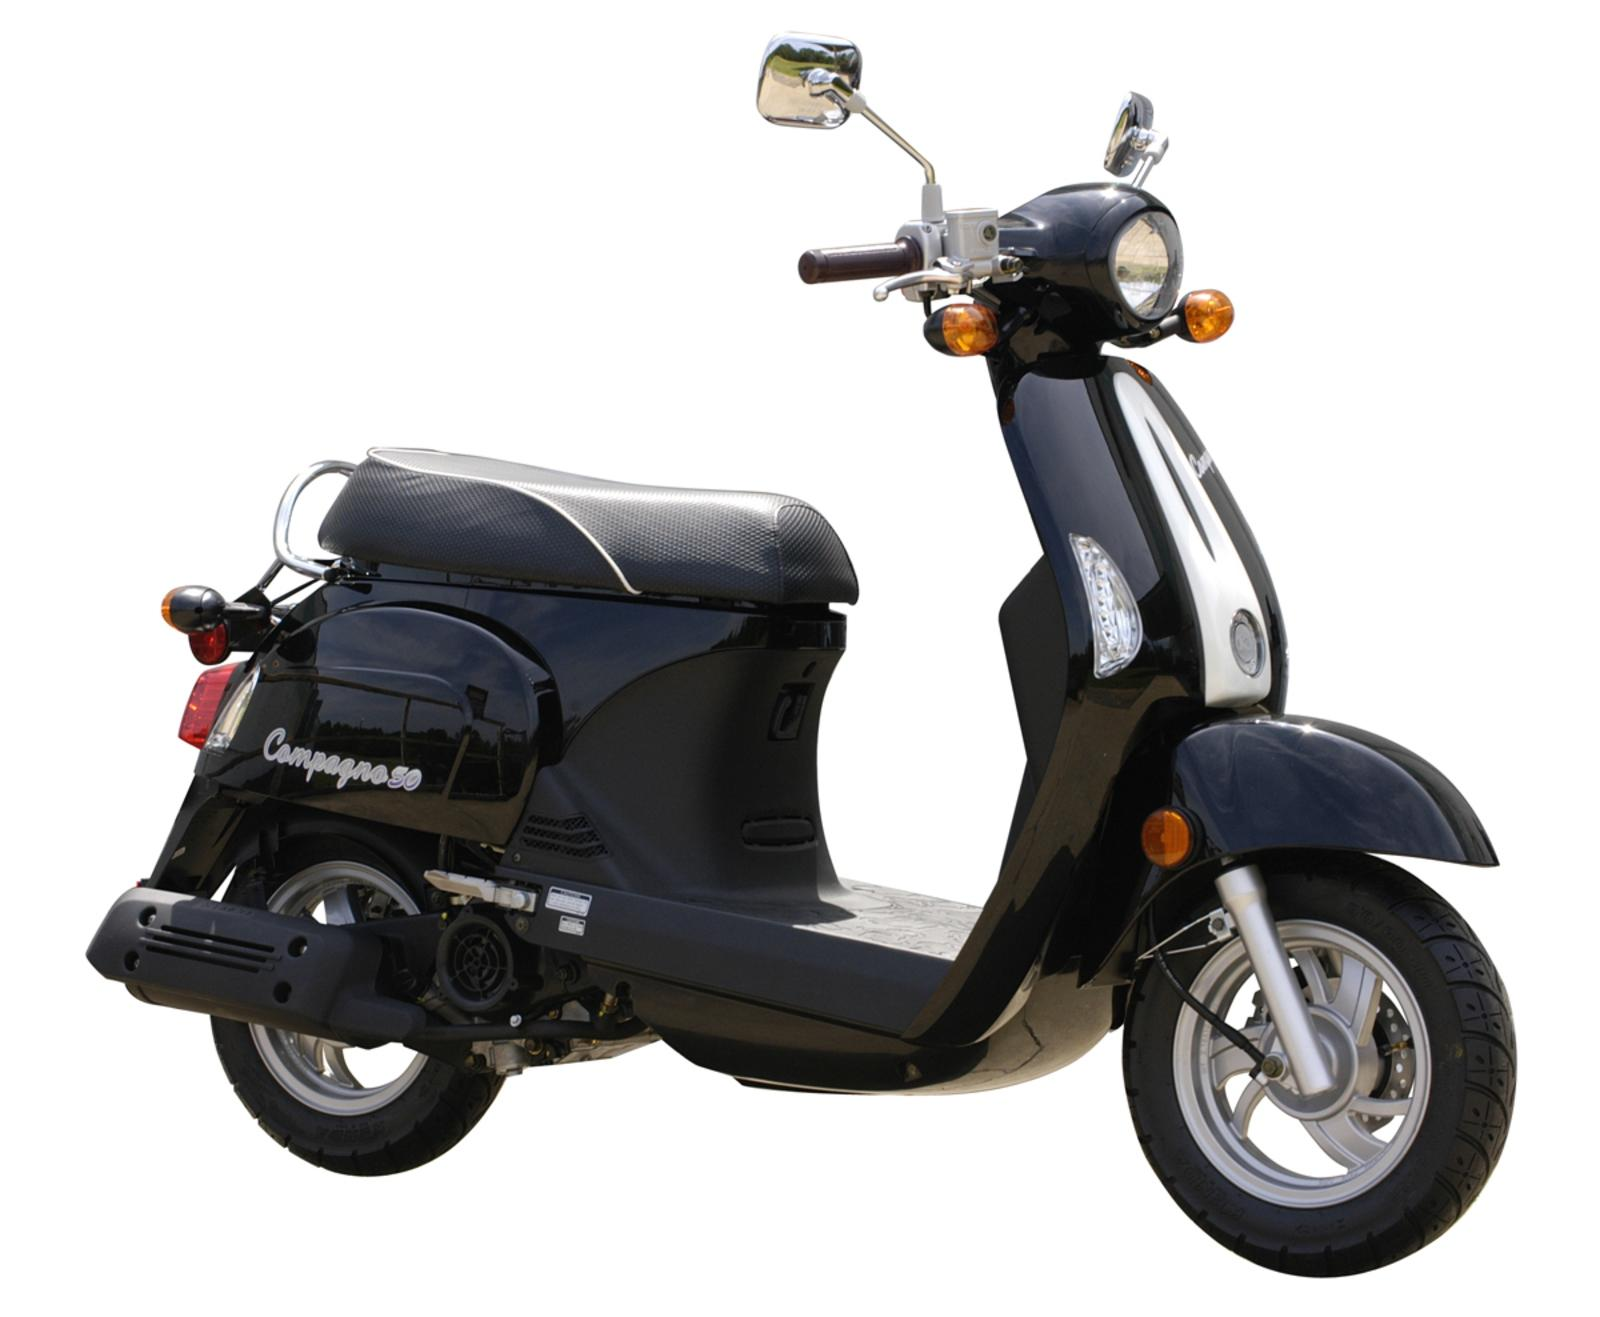 2013 Kymco Compagno 50i 110i Review Top Speed